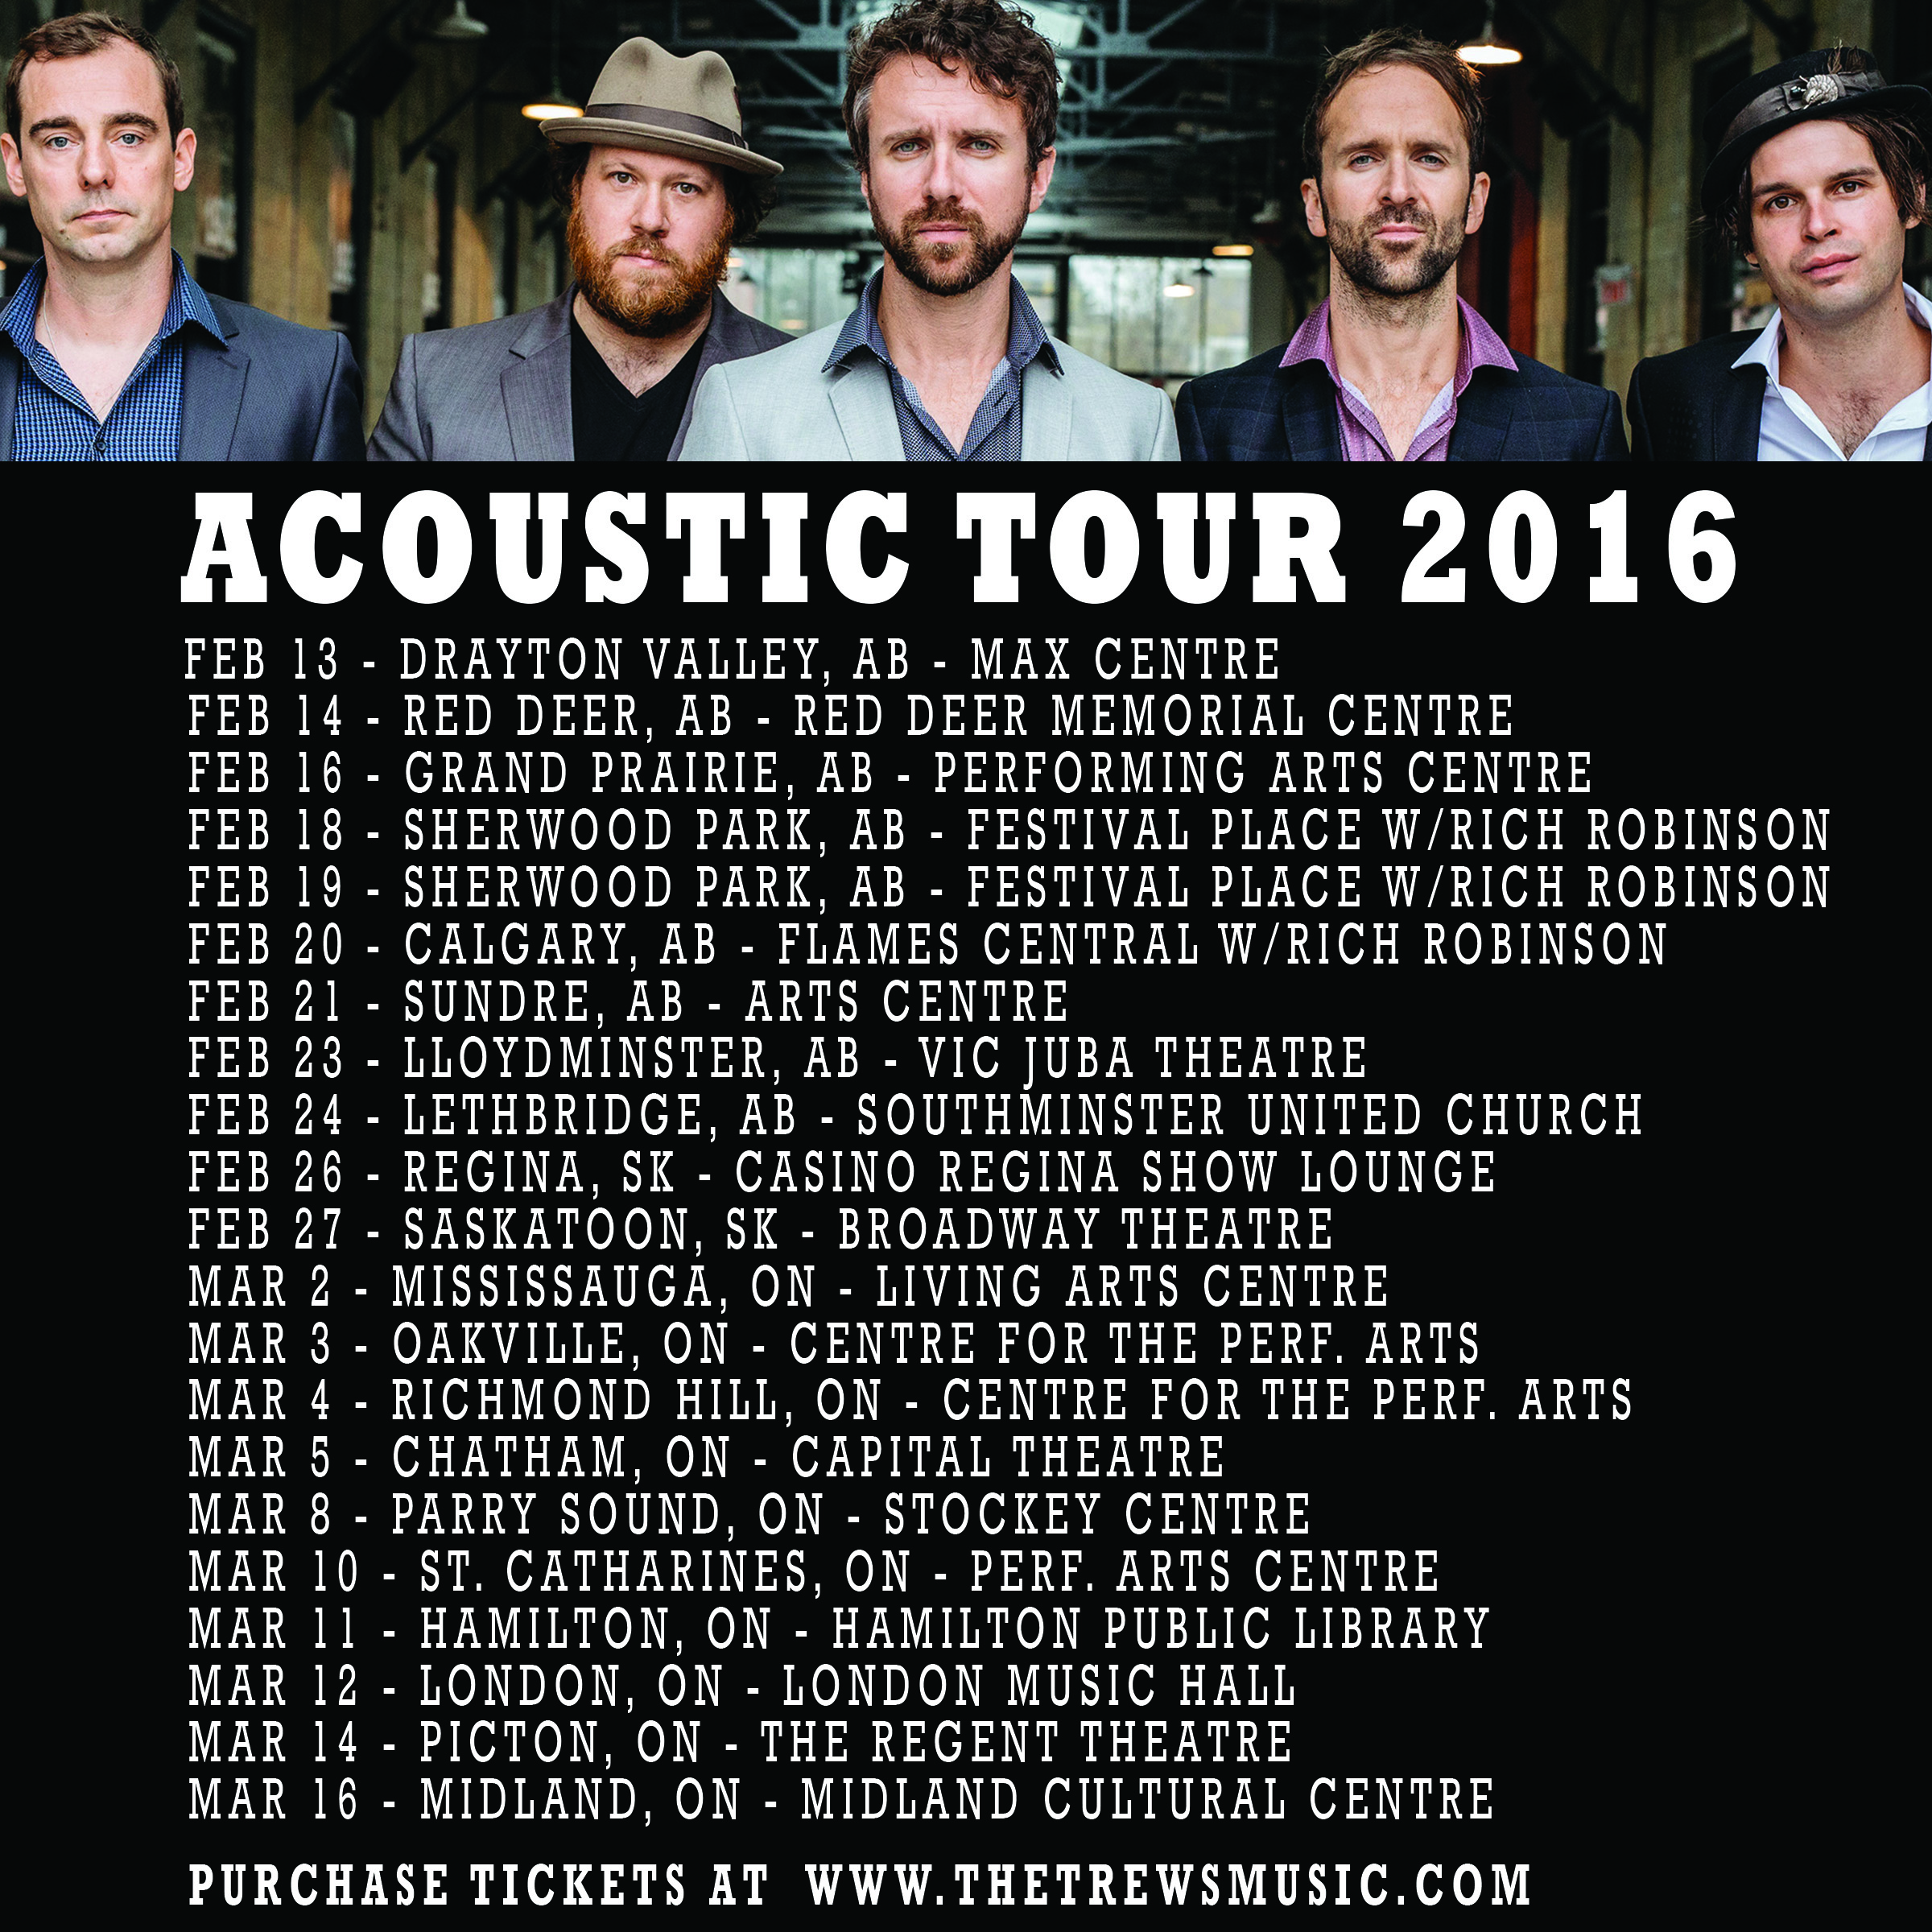 ACOUSTIC-TOUR-IG-LIST.jpg